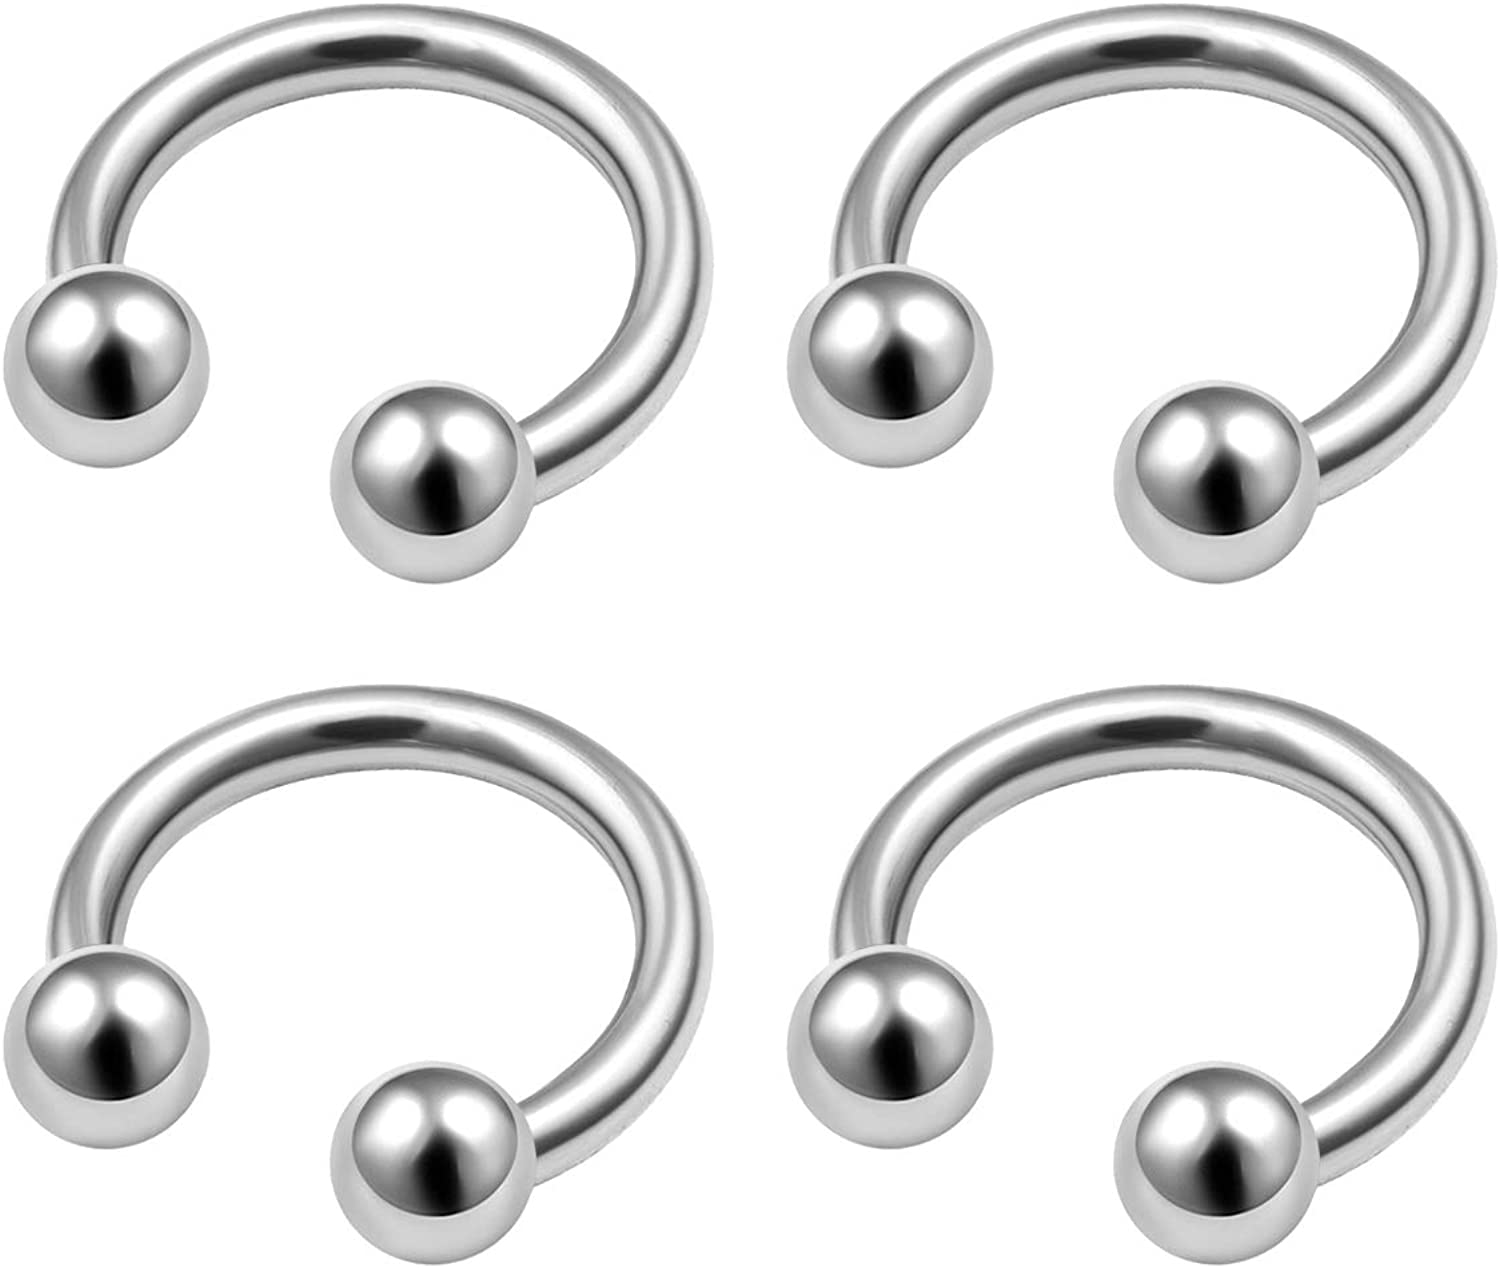 MATIGA 4Pcs Surgical Steel 16 Gauge Horseshoe Septum Ring Piercing Jewelry Daith Rook Helix Cartilage Eyebrow 3mm Ball More Choices